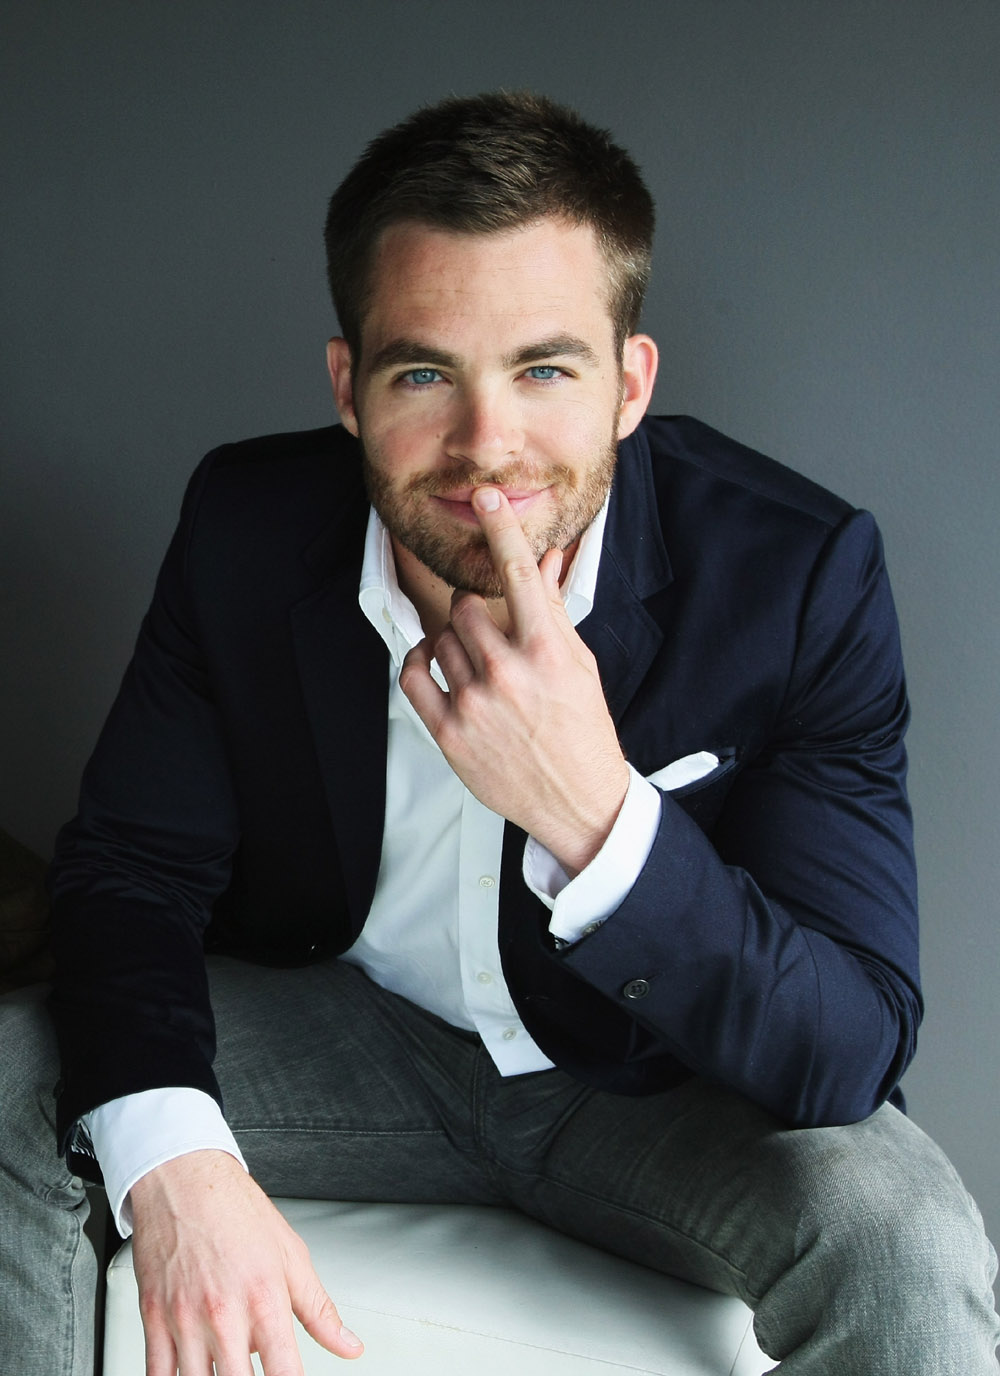 http://chanaristyle.files.wordpress.com/2010/11/star-trek-chris-pine.jpg